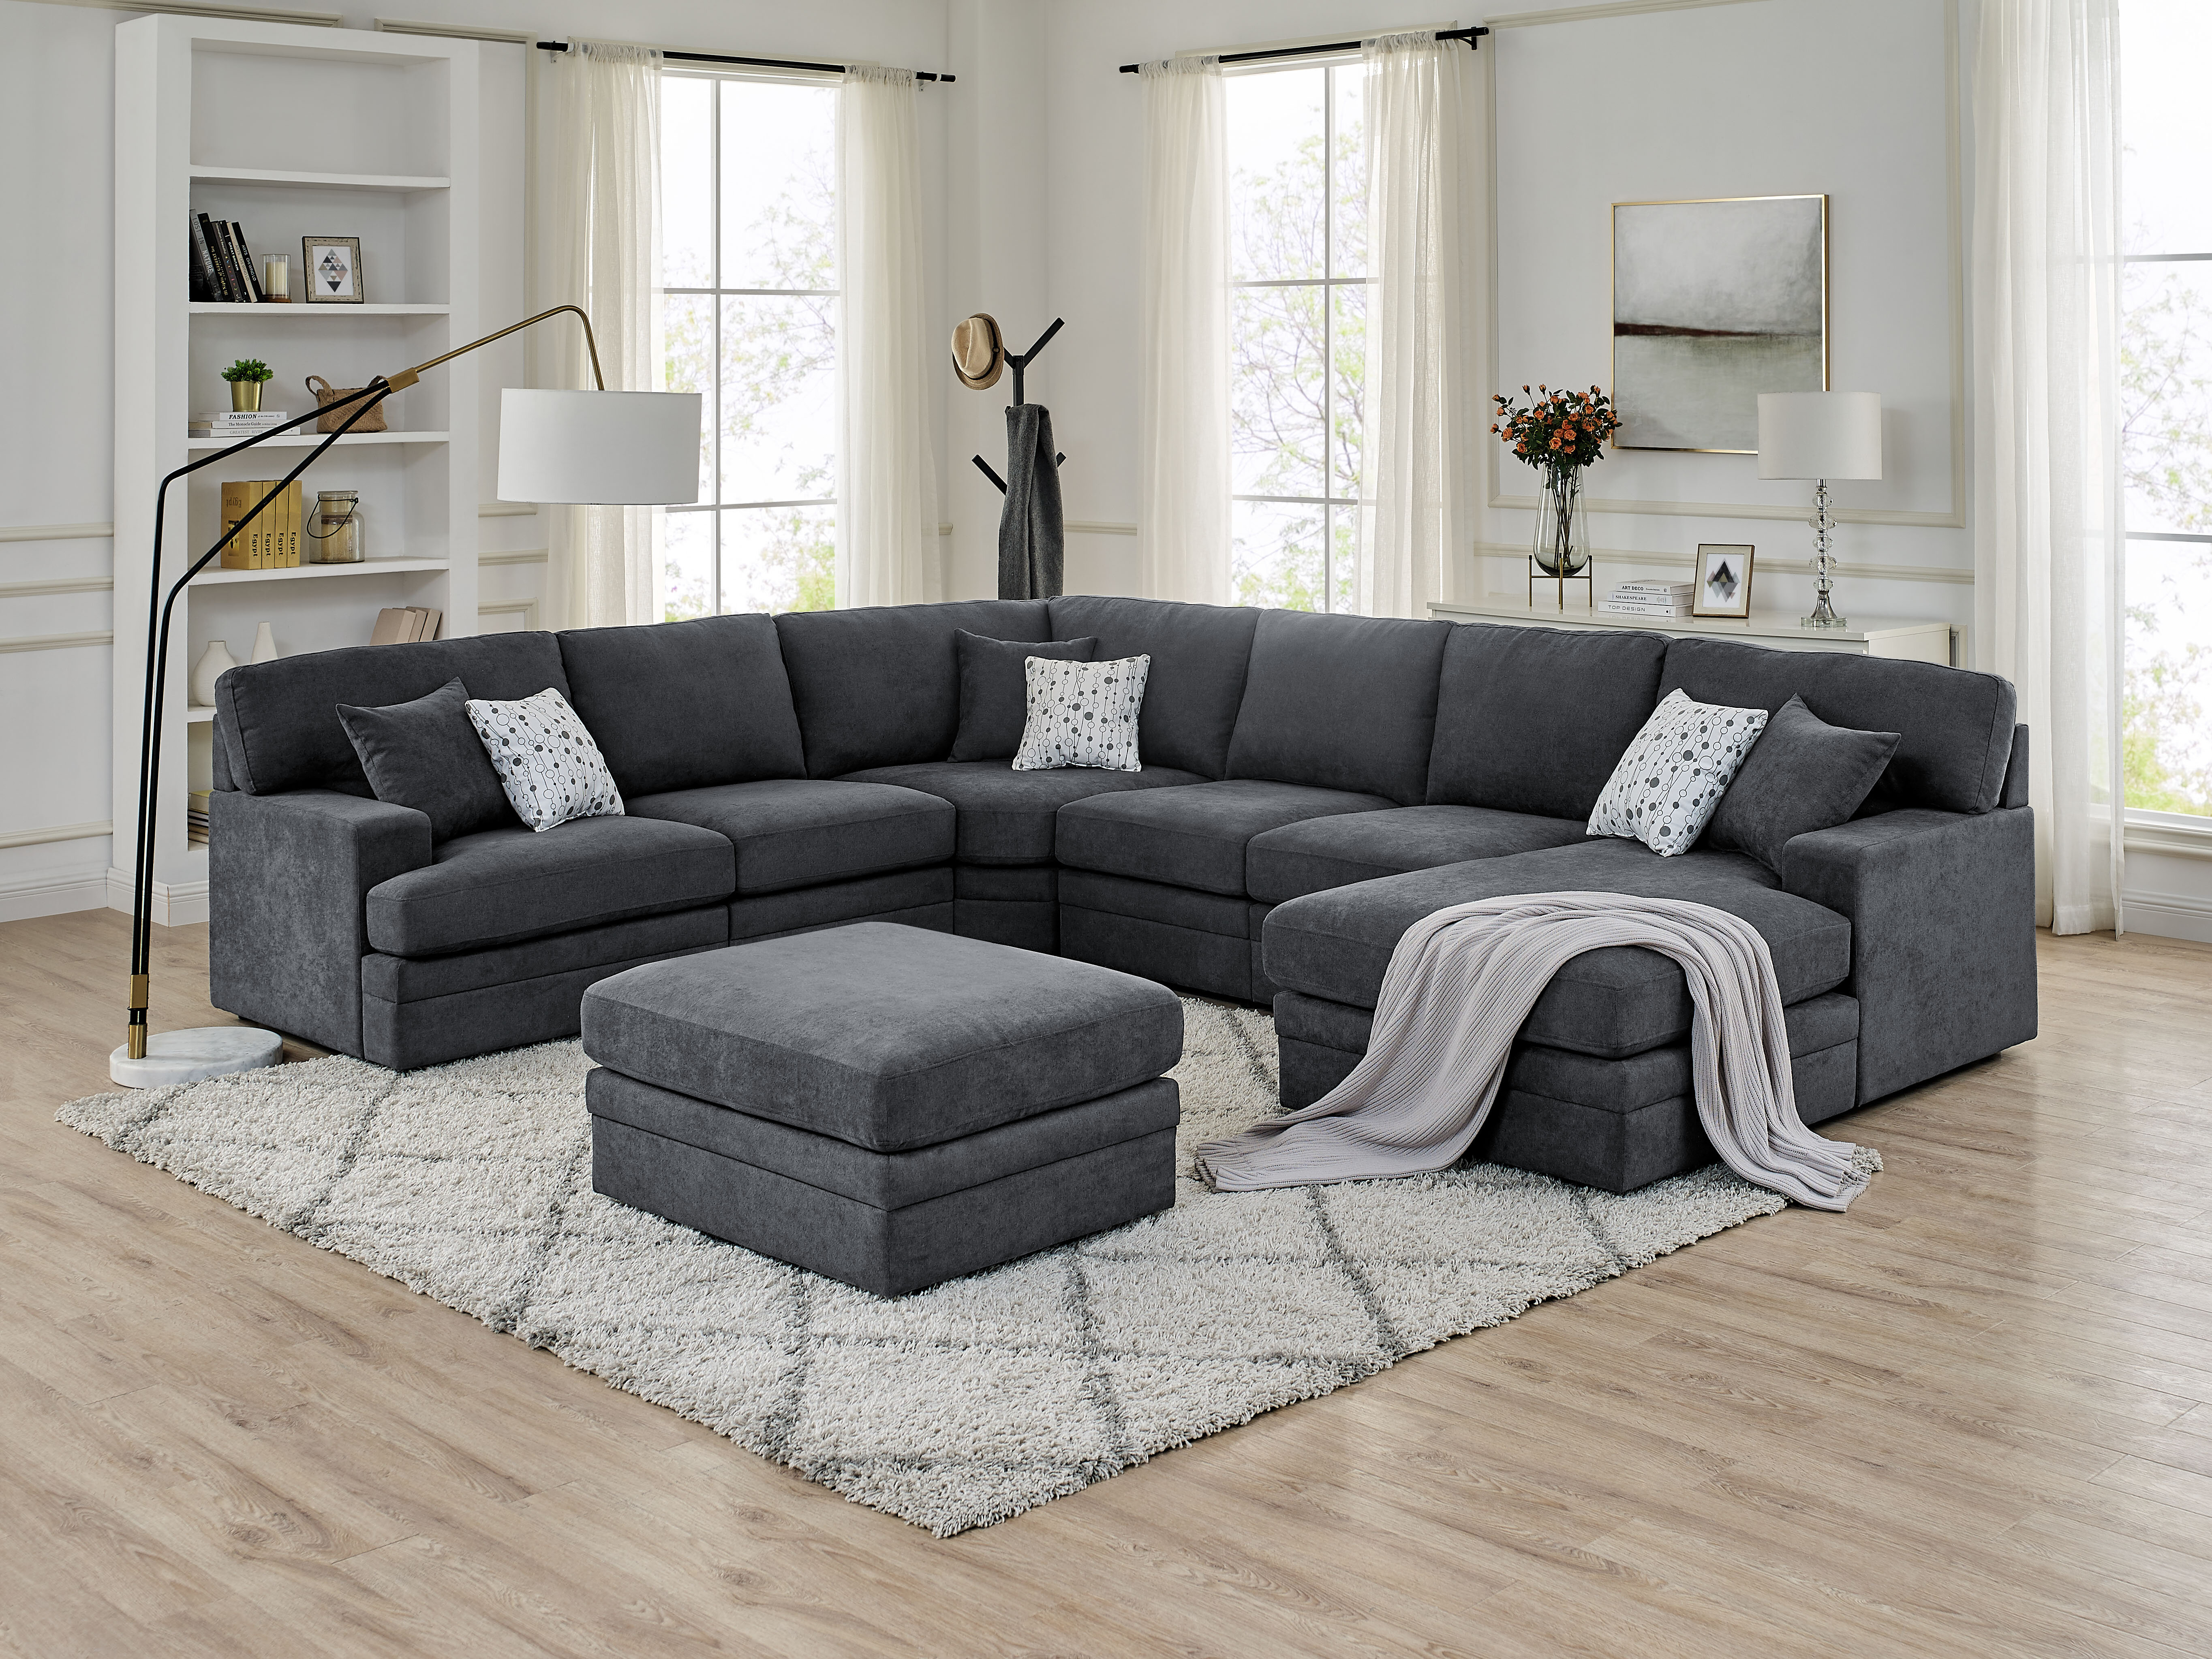 ebern designs episkopi 5 seater large 139 right hand facing sectional sofa with ottoman w